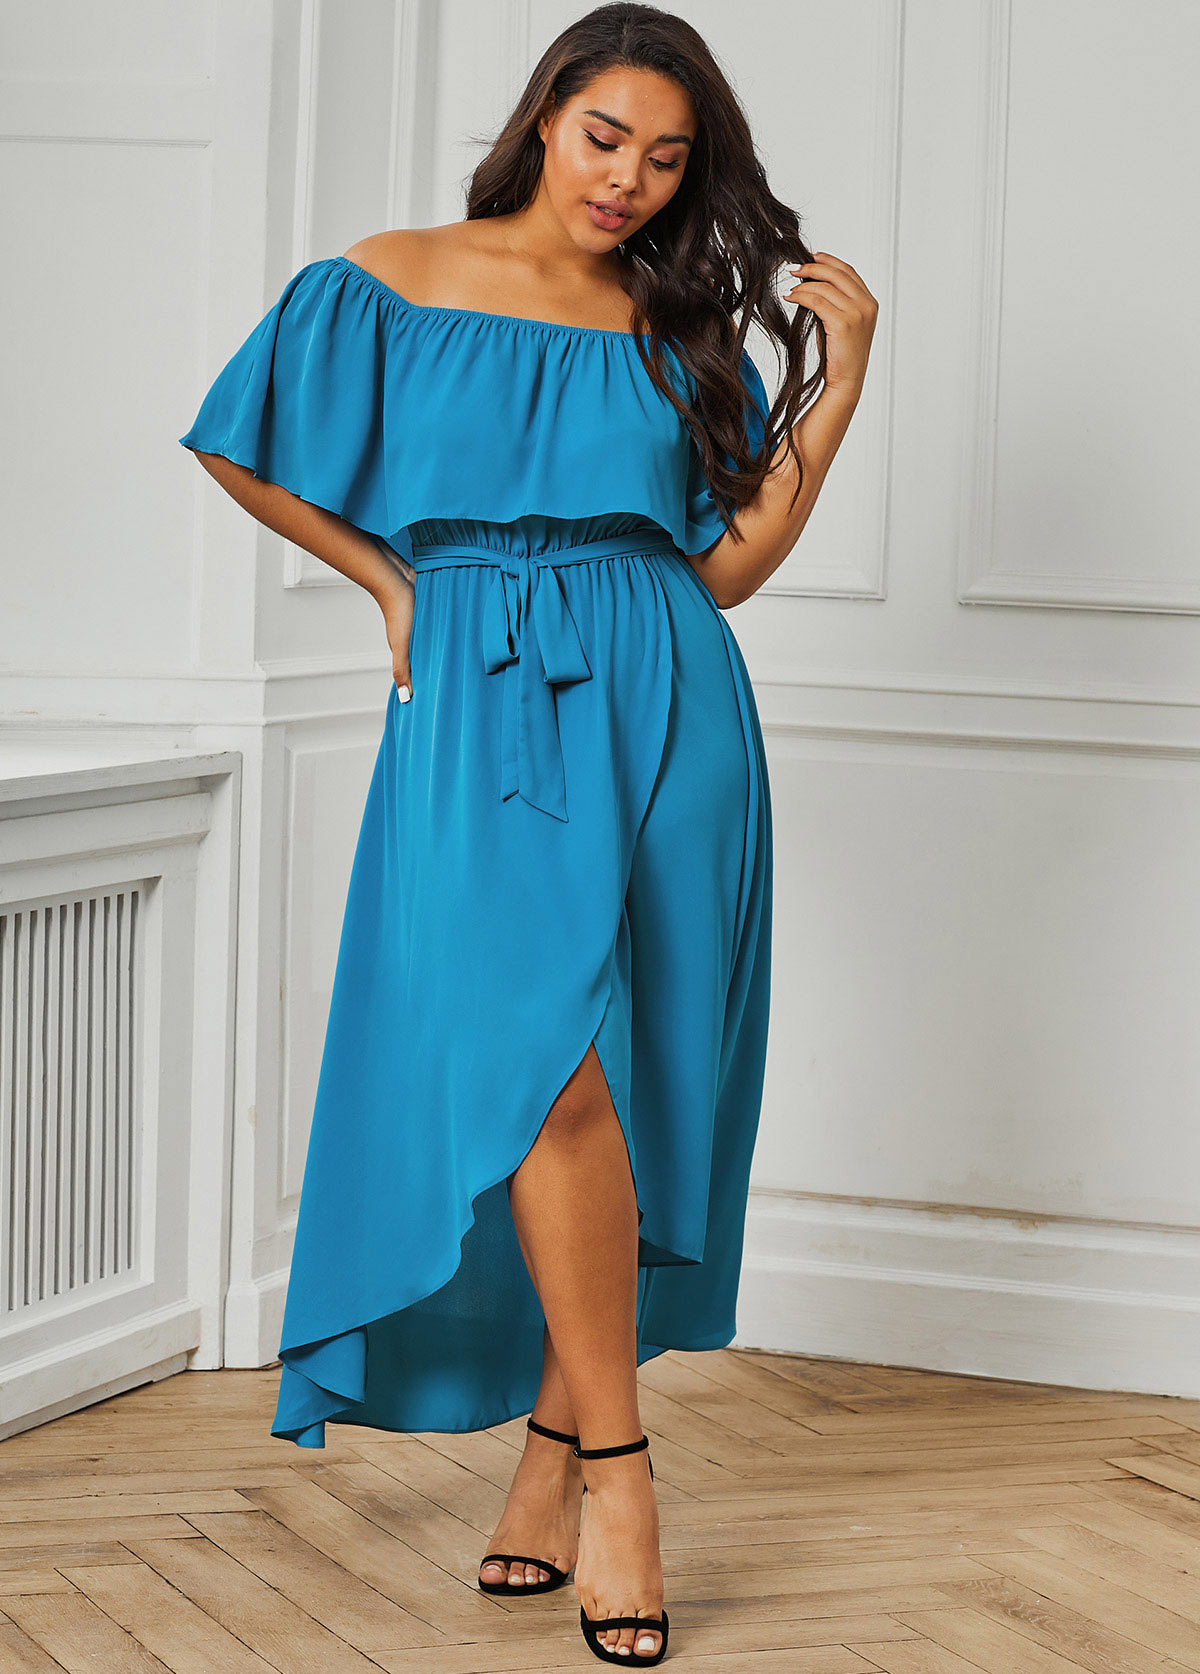 Ruffle Overlay Crossover Hem Plus Size Dress